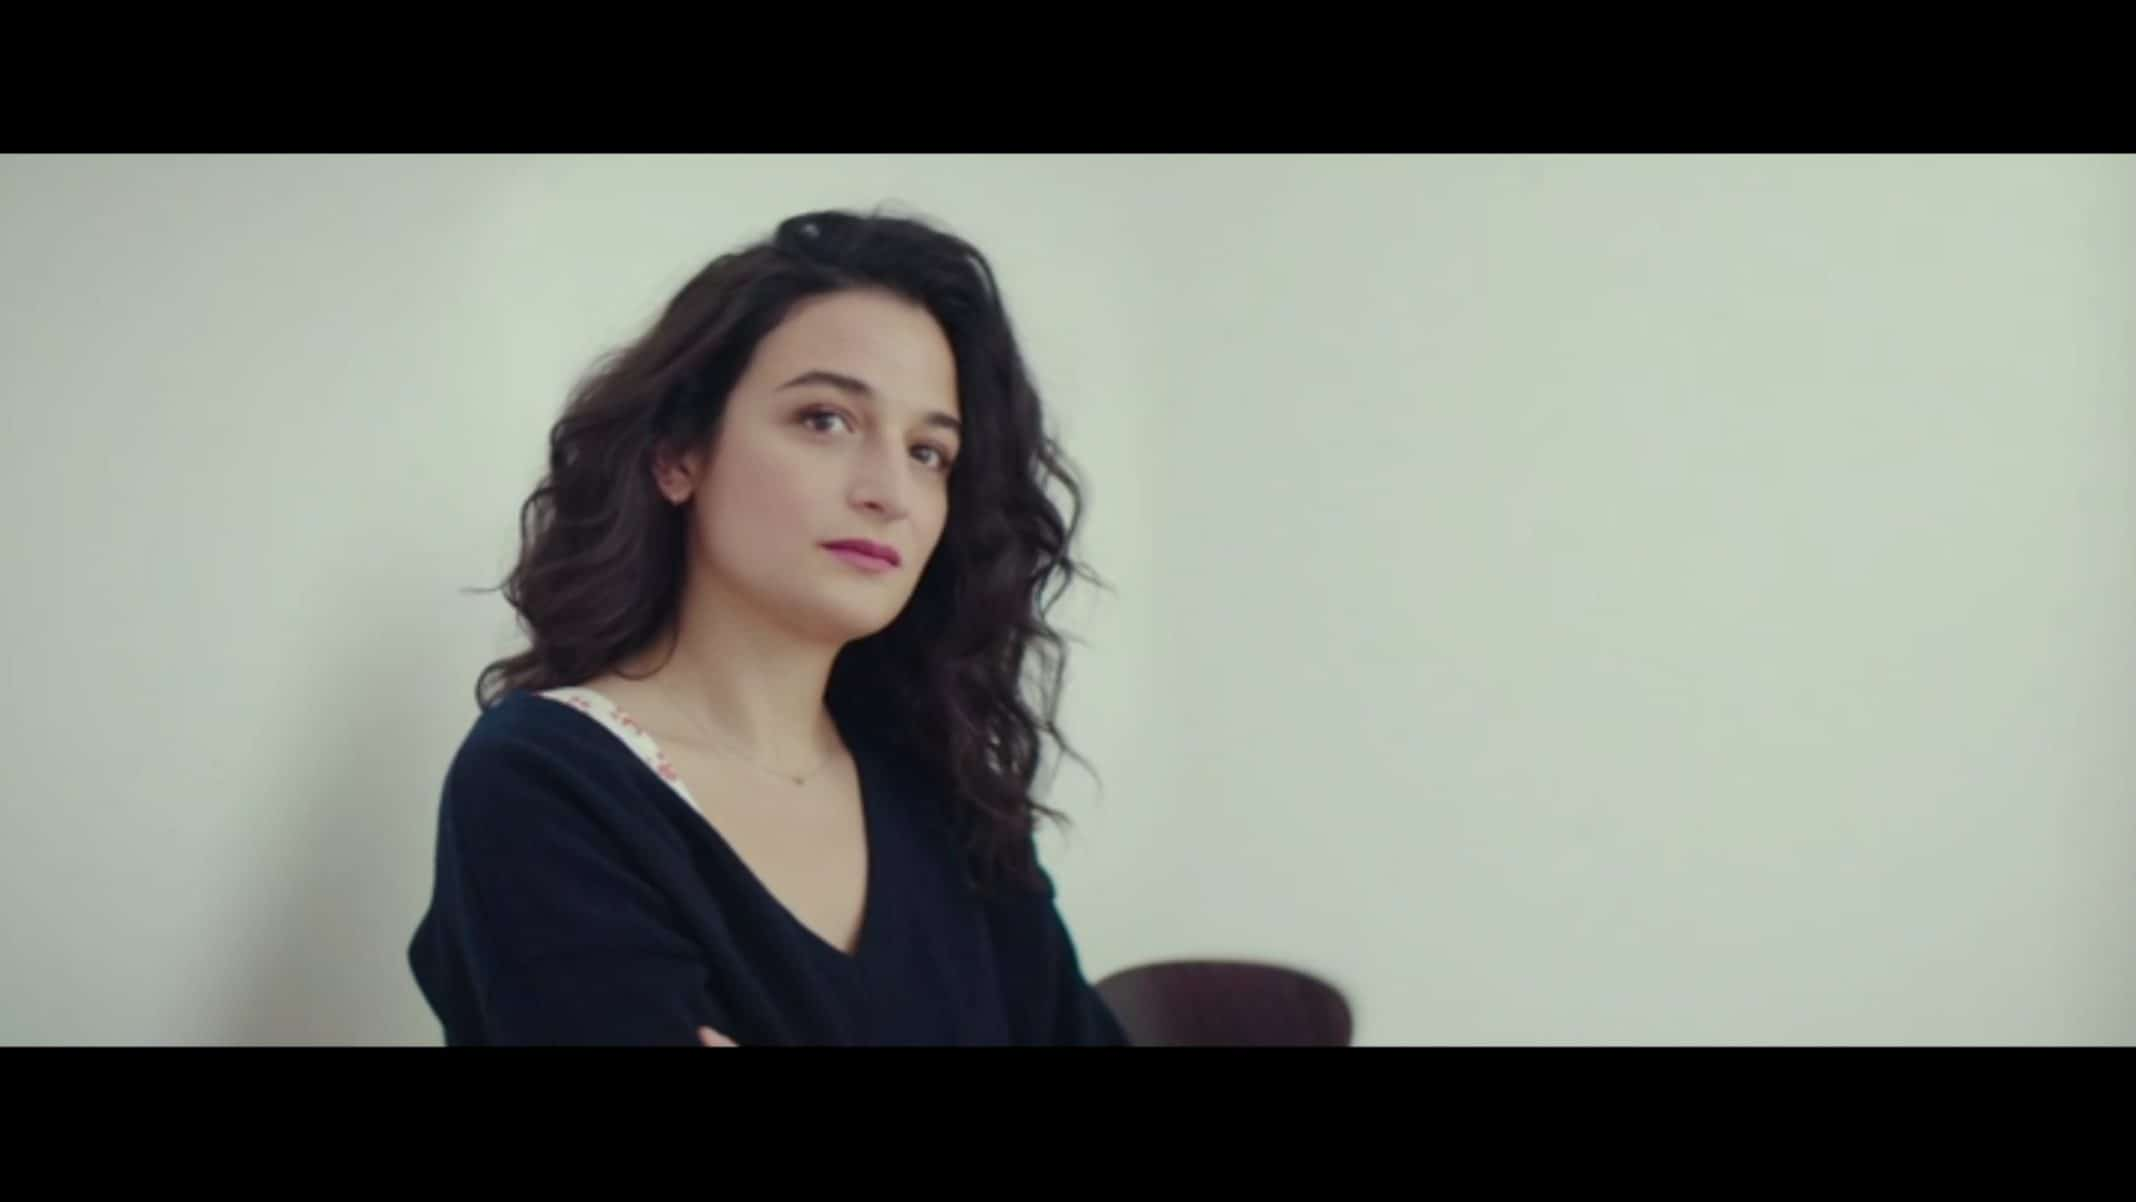 Frances (Jenny Slate) having her art critiqued.